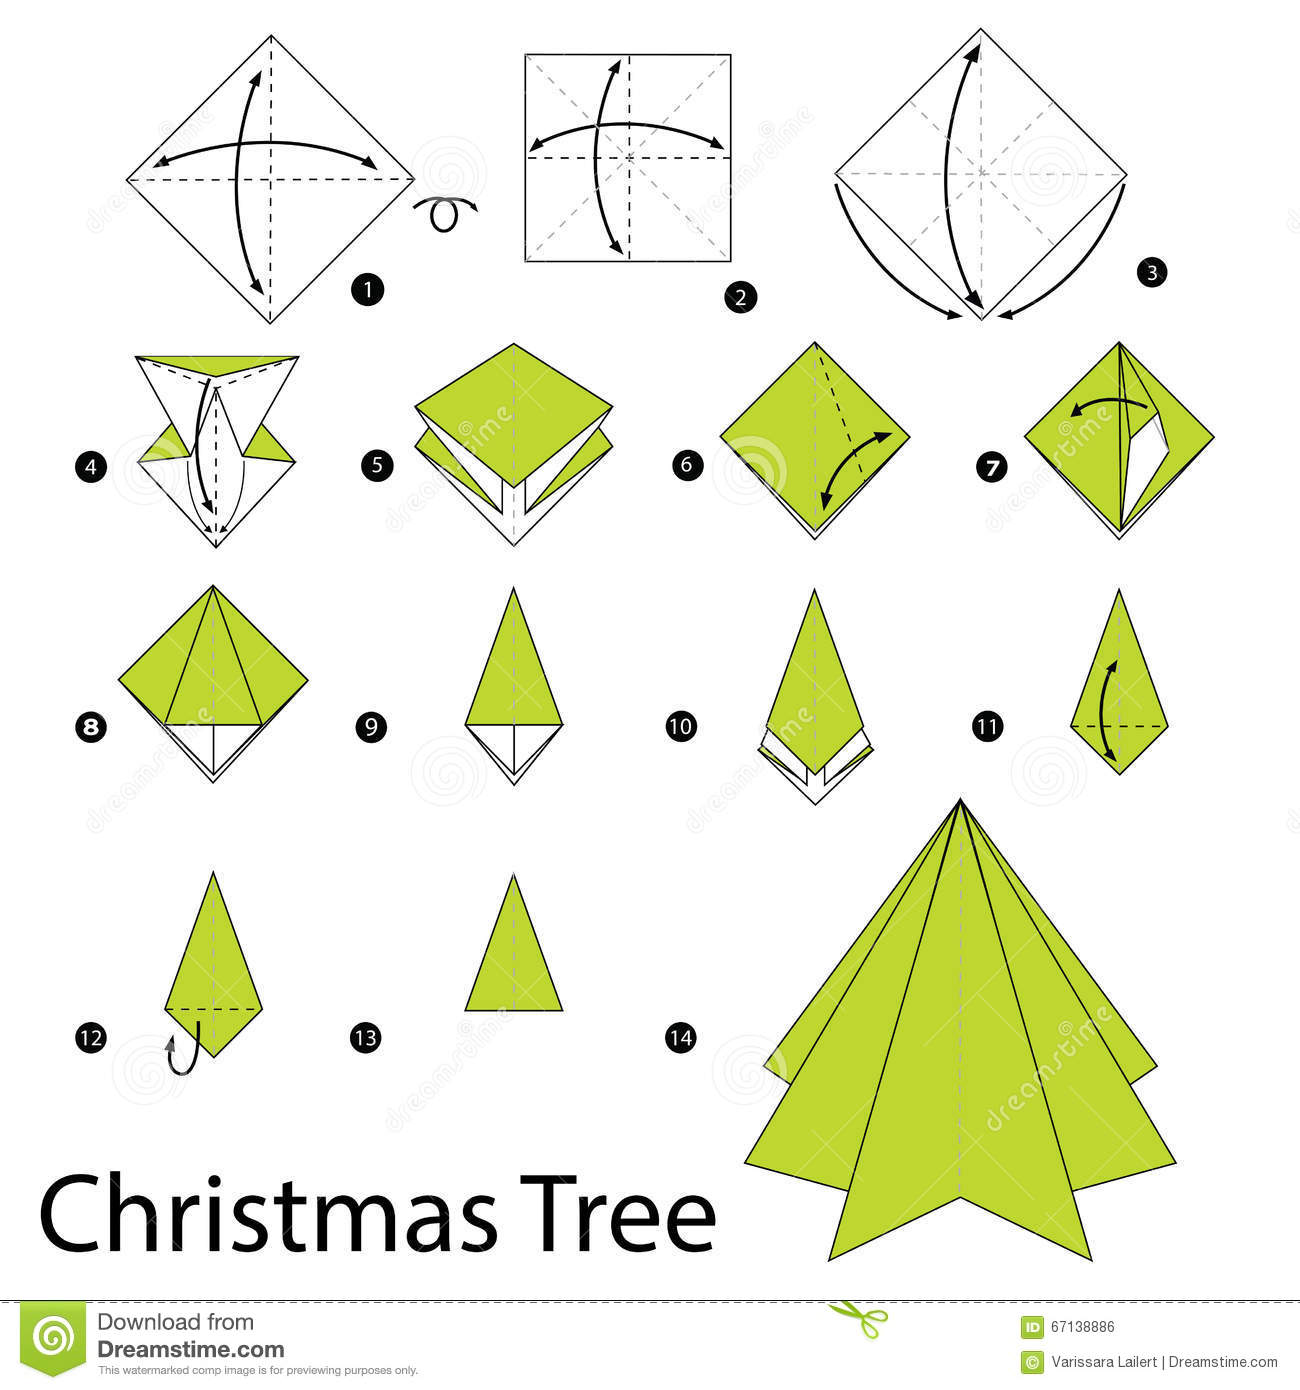 Origami folding instructions how to make a christmas tree.